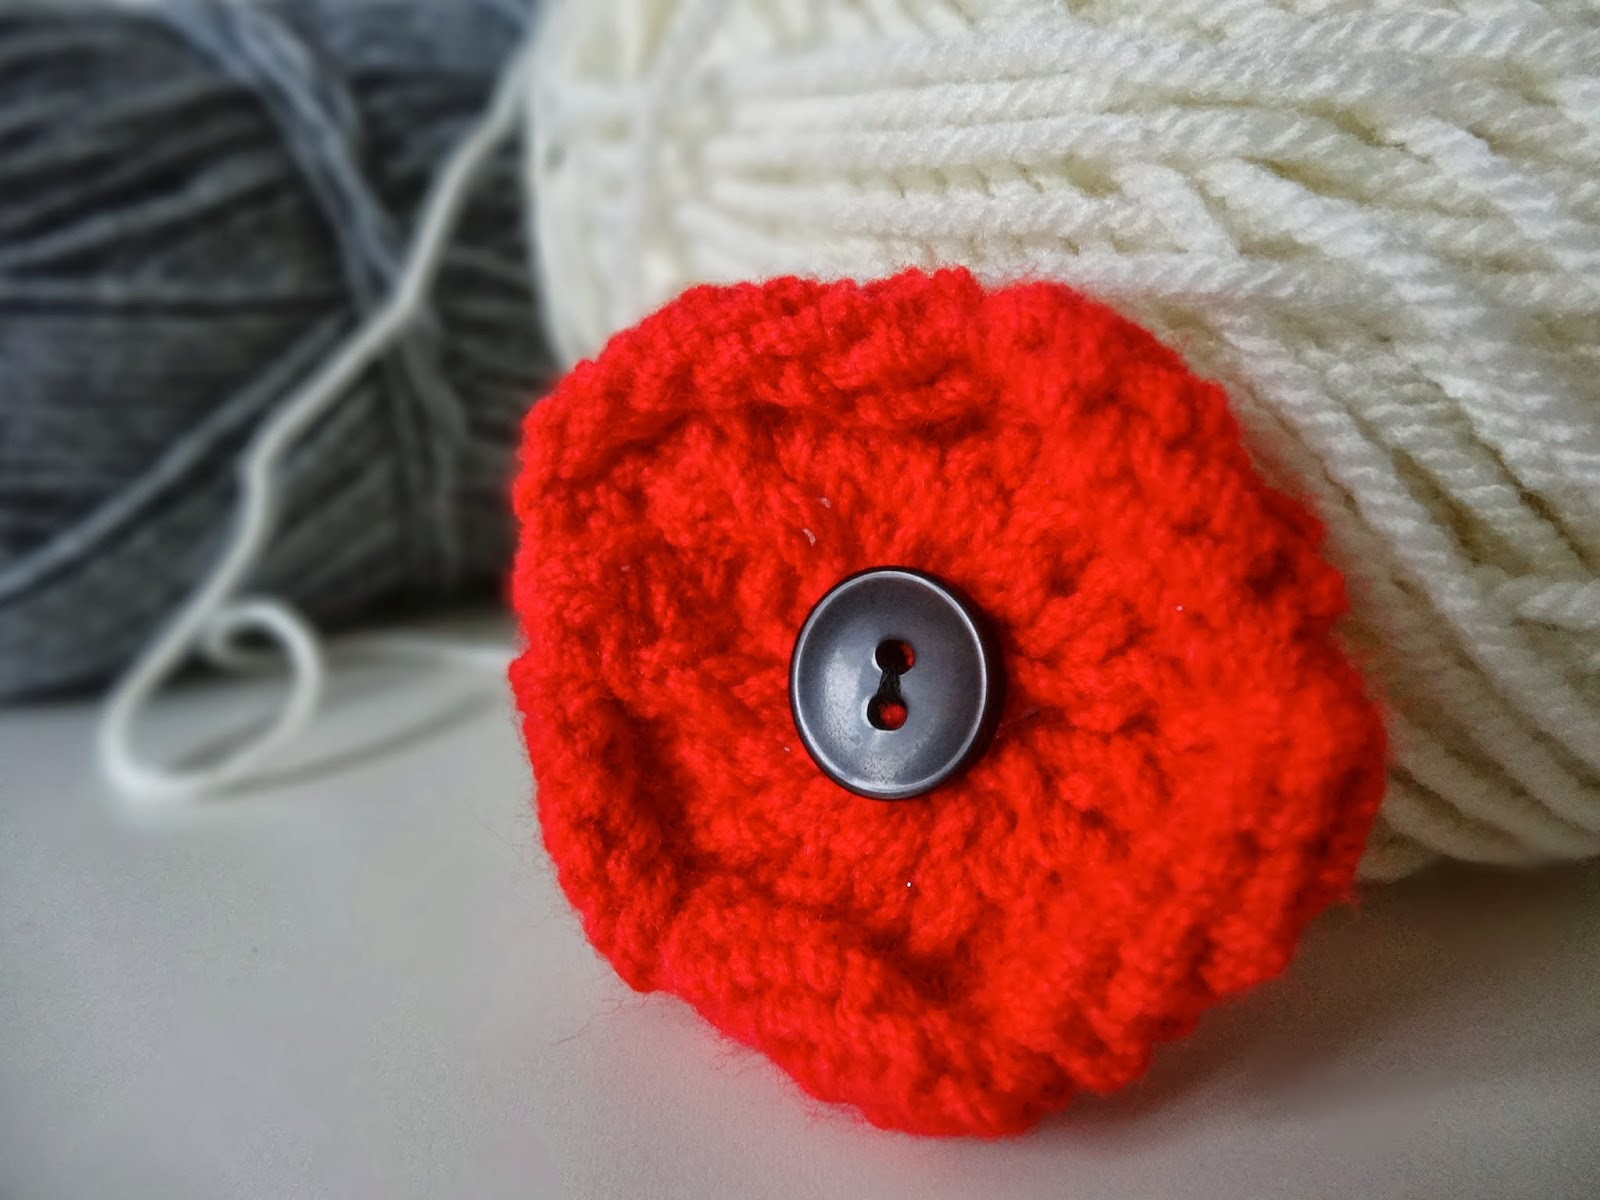 Knitting Patterns To Make Poppies : Trends With Benefits: DIY Knitted Poppy